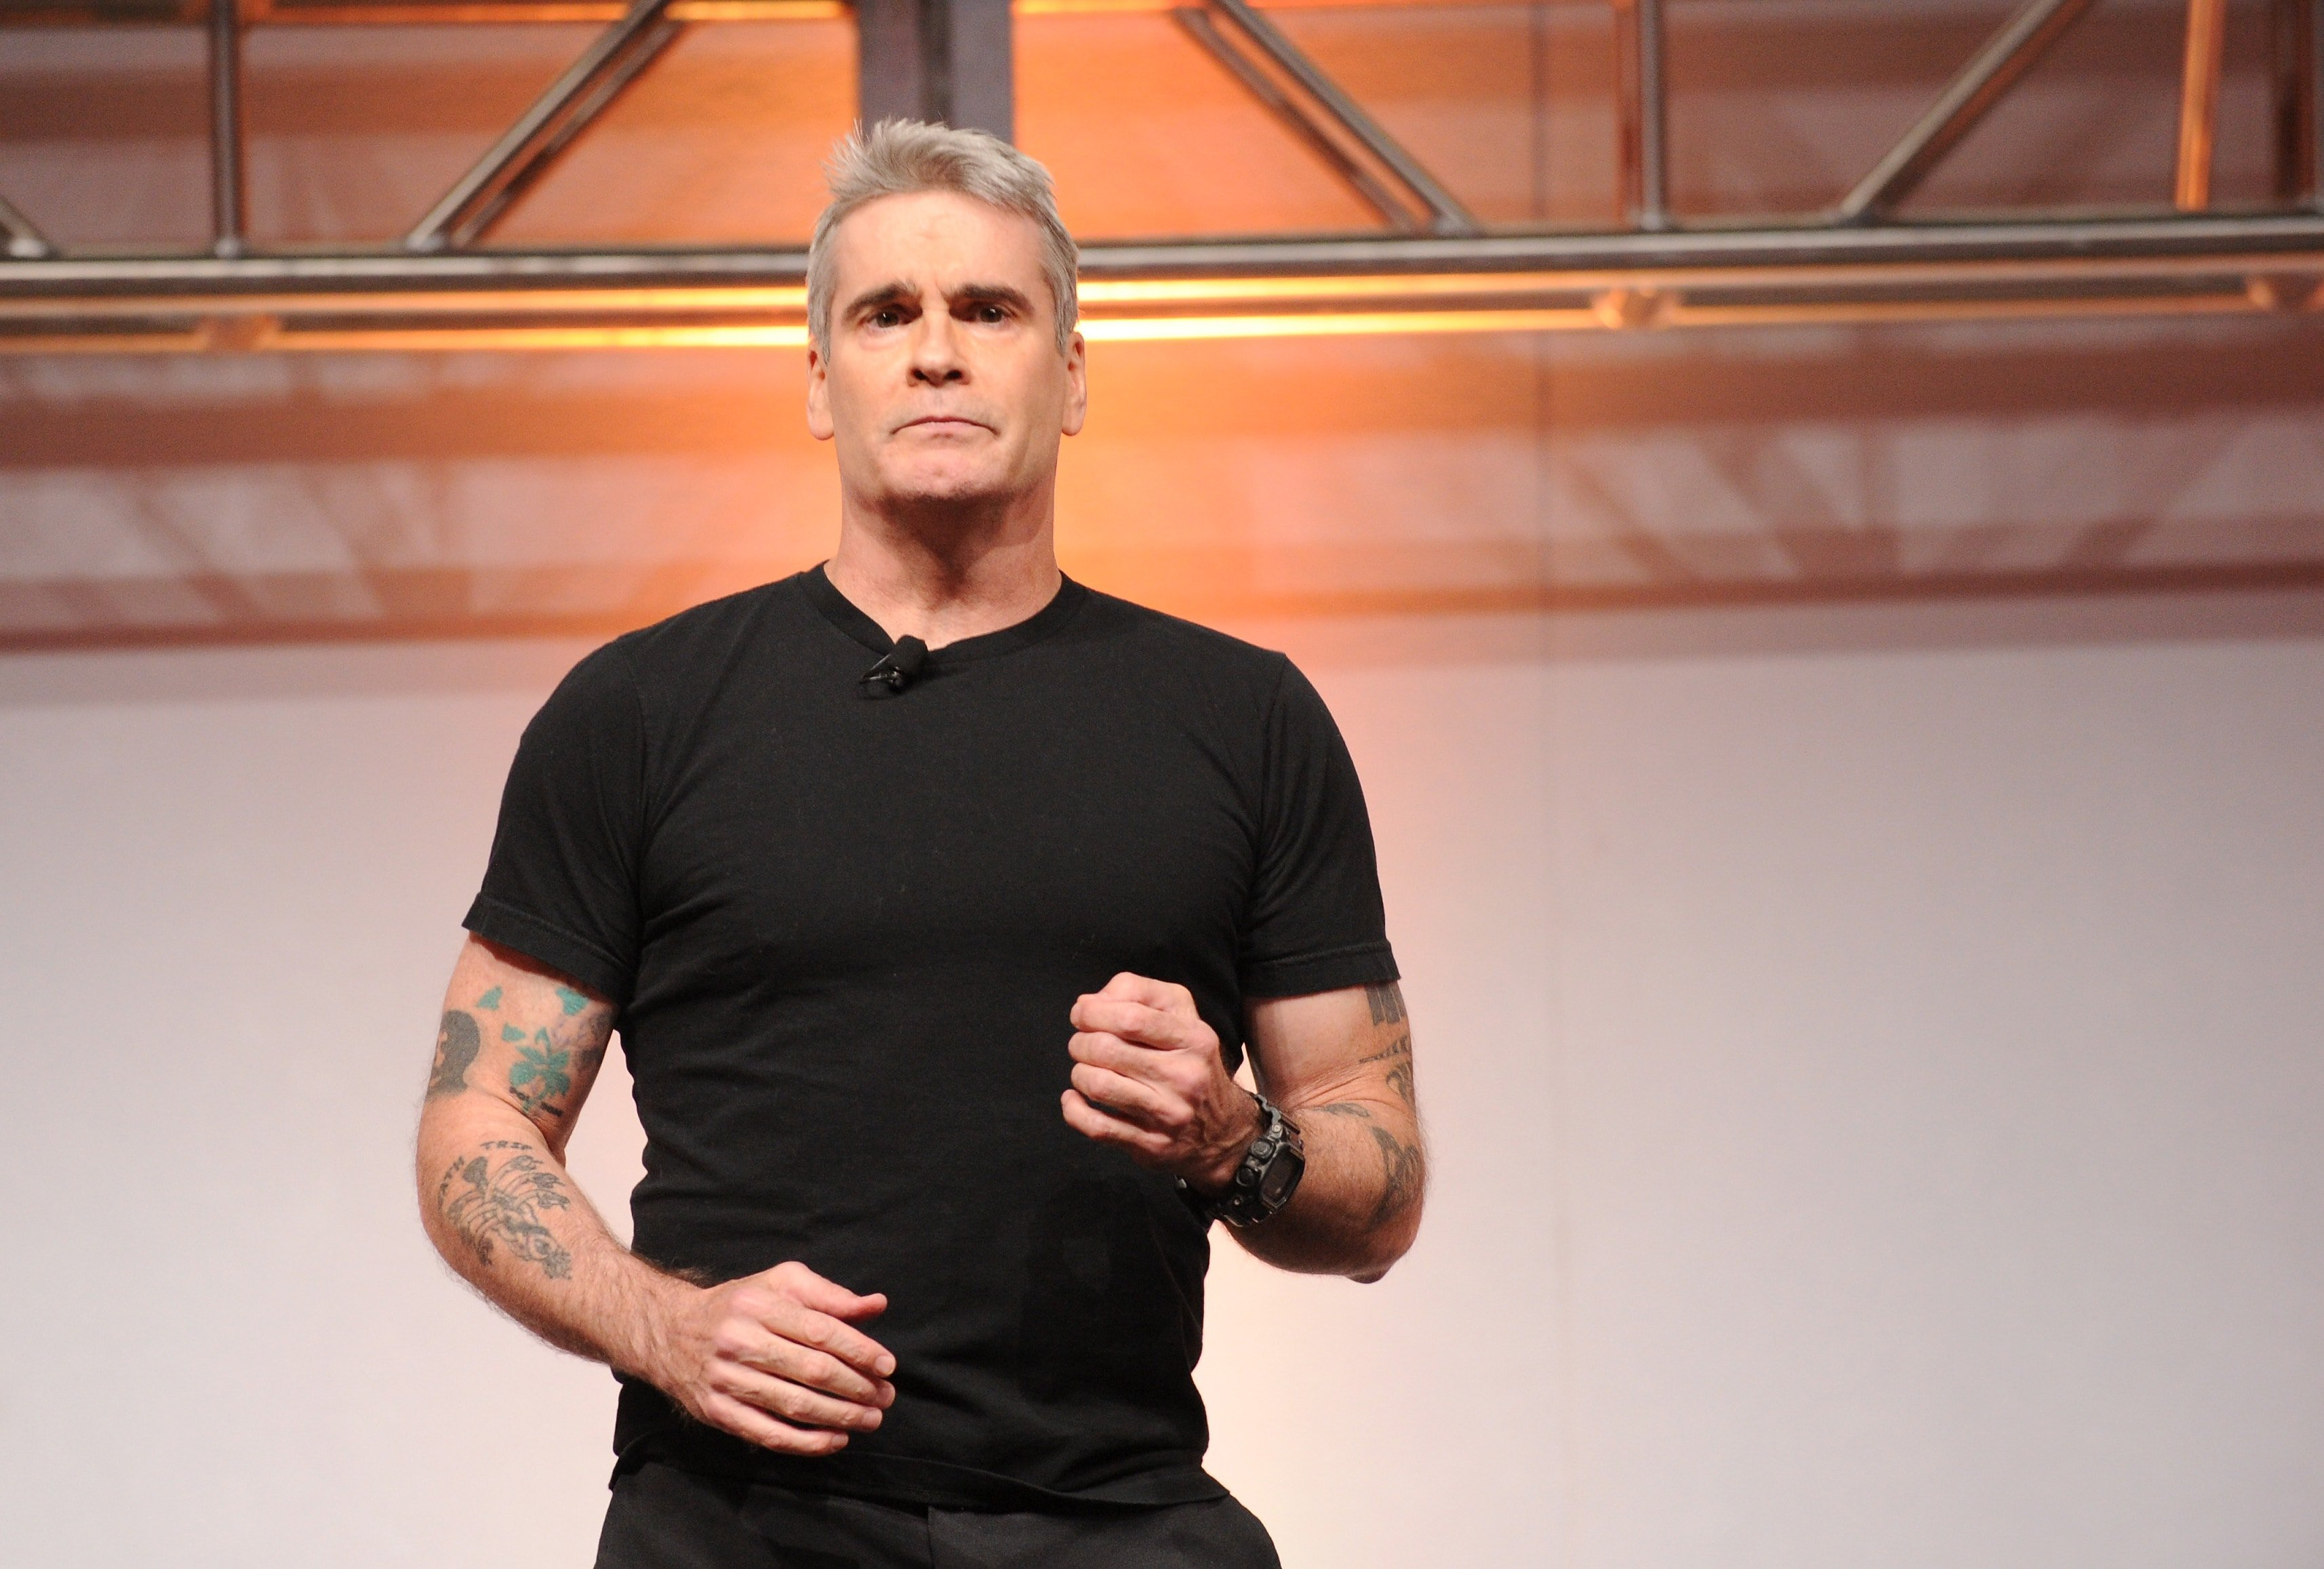 NEW YORK, NY - MAY 08: Henry Rollins speaks onstage at the 2014 A+E Networks Upfront on May 8, 2014 in New York City.